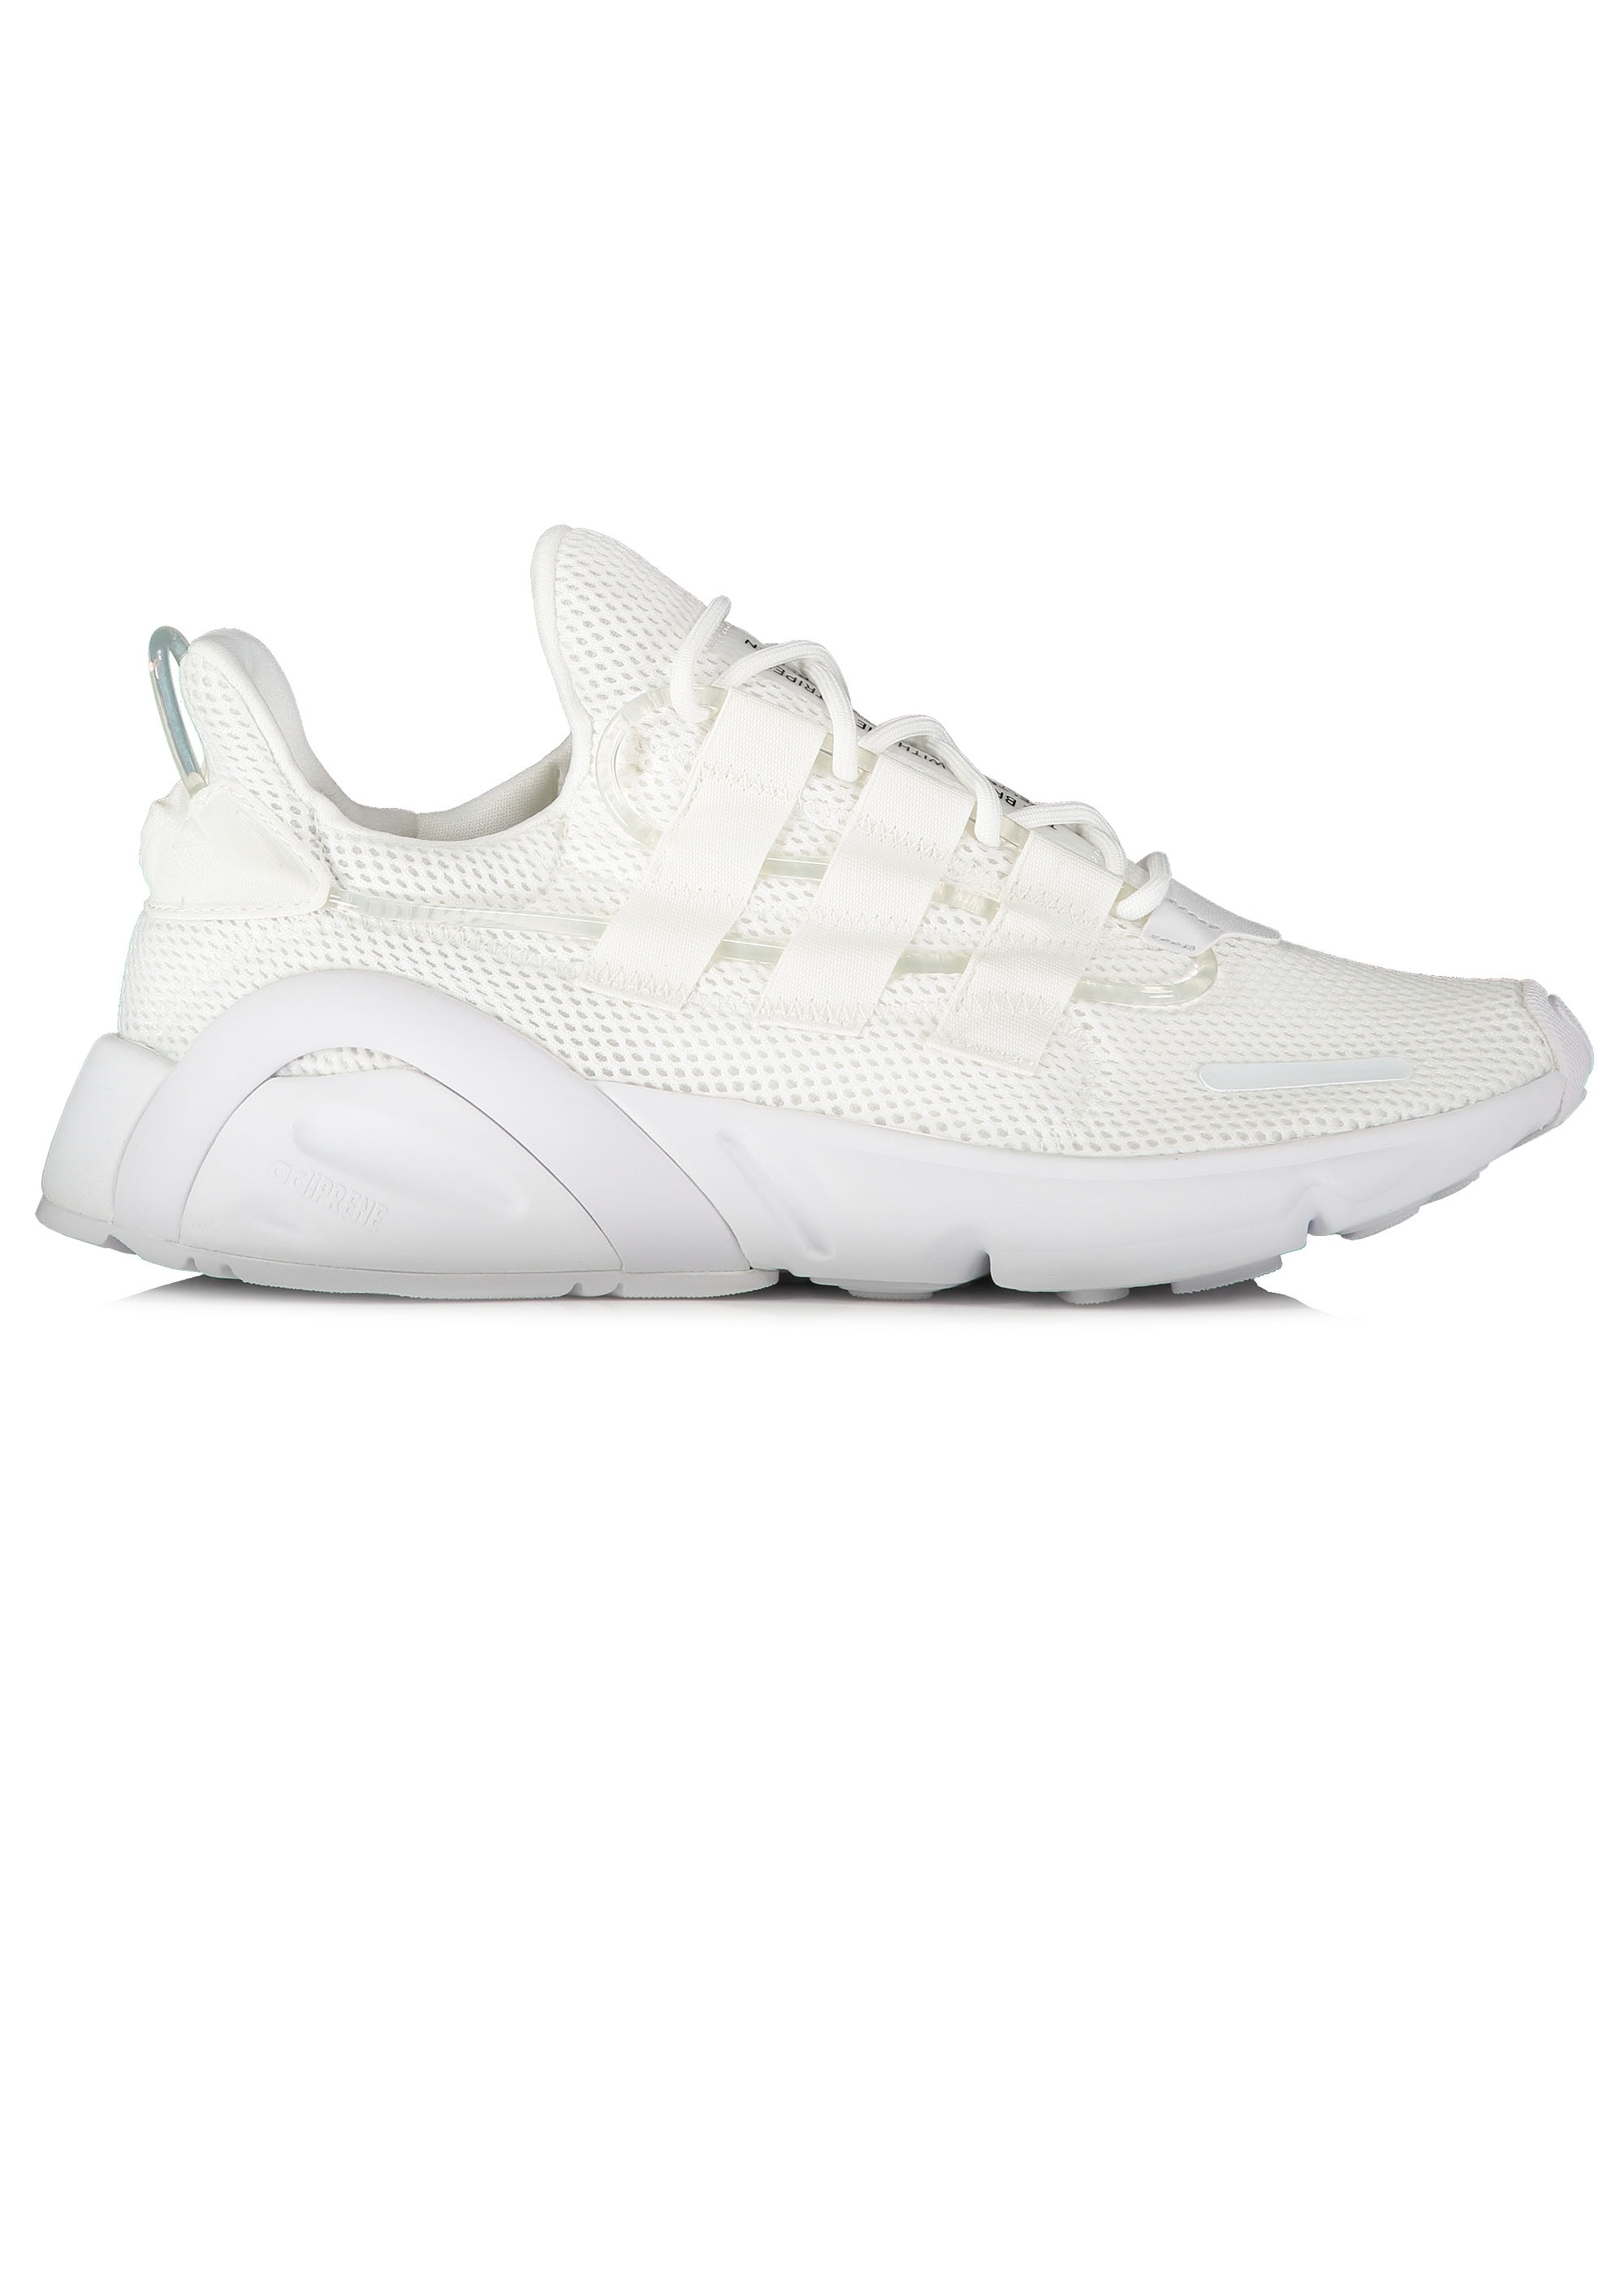 adidas Originals Footwear LXCON Trainers White